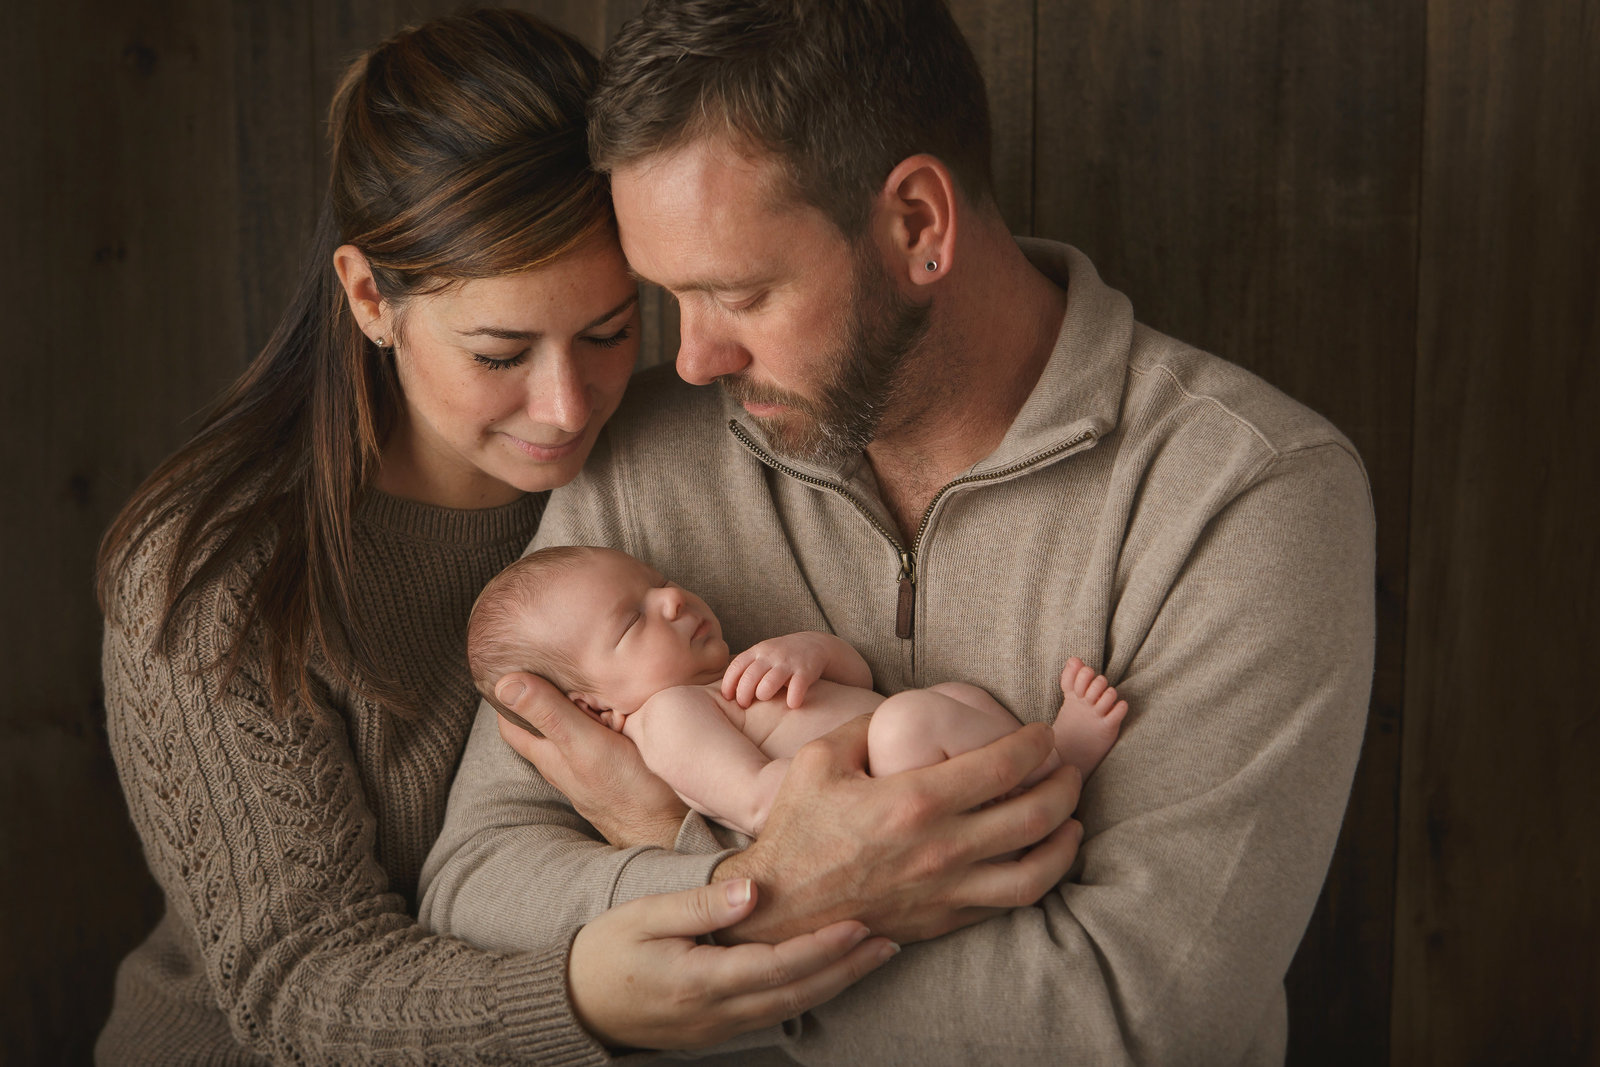 Poughkeepsie family with newborn baby in Cornwall NY studio by professional photographer in Hudson Valley